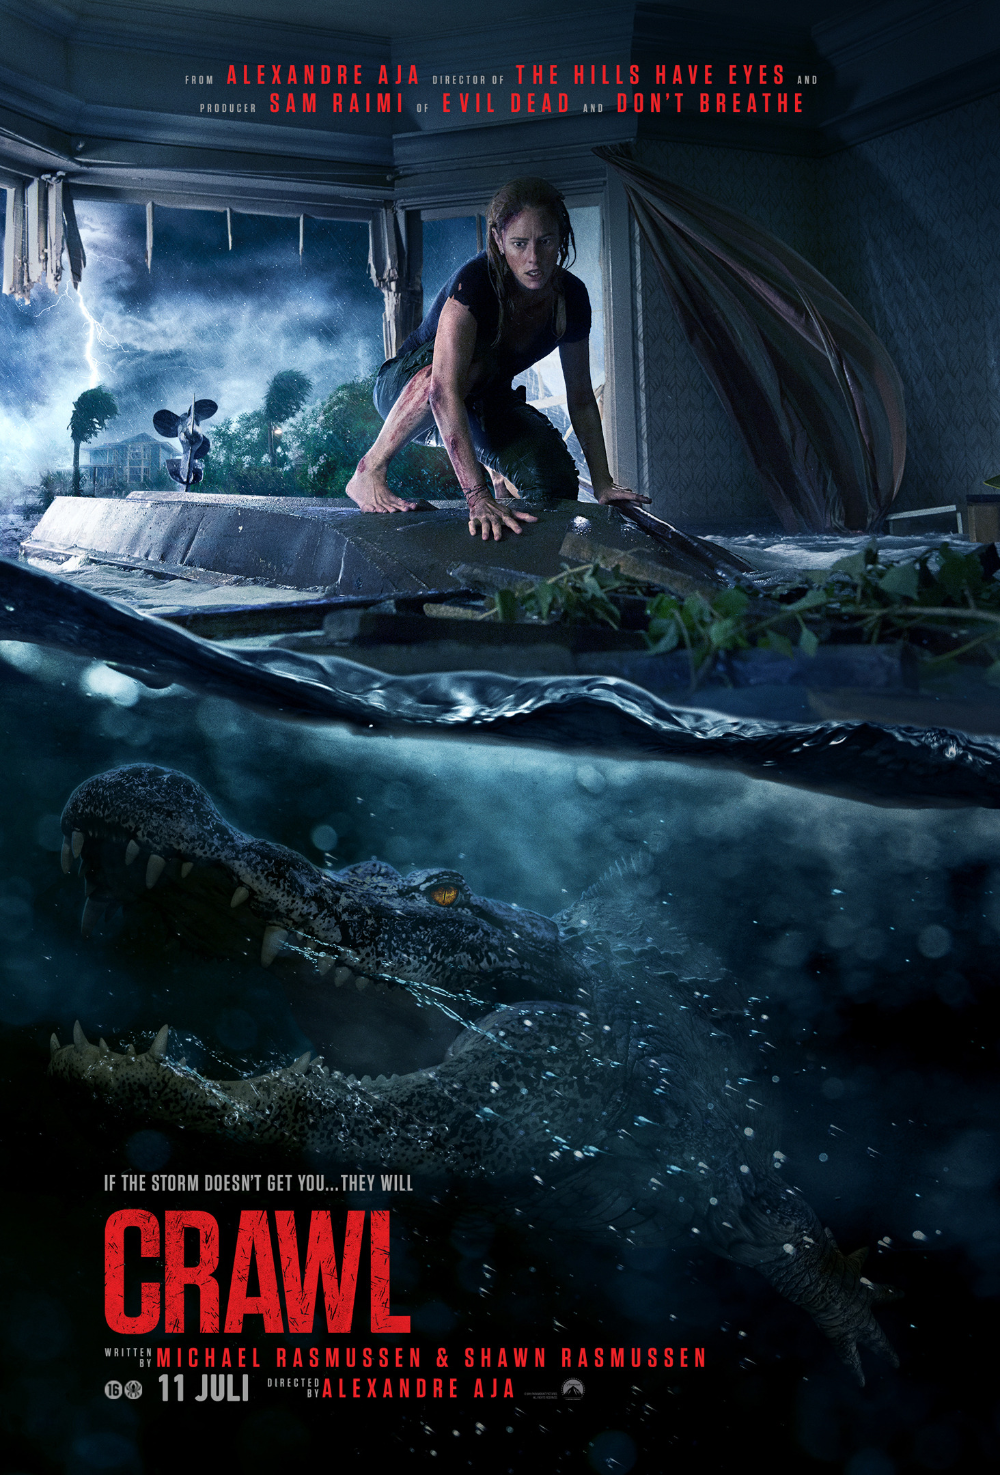 172 Crawl Dec 20th Full Movies The Hills Have Eyes Full Movies Online